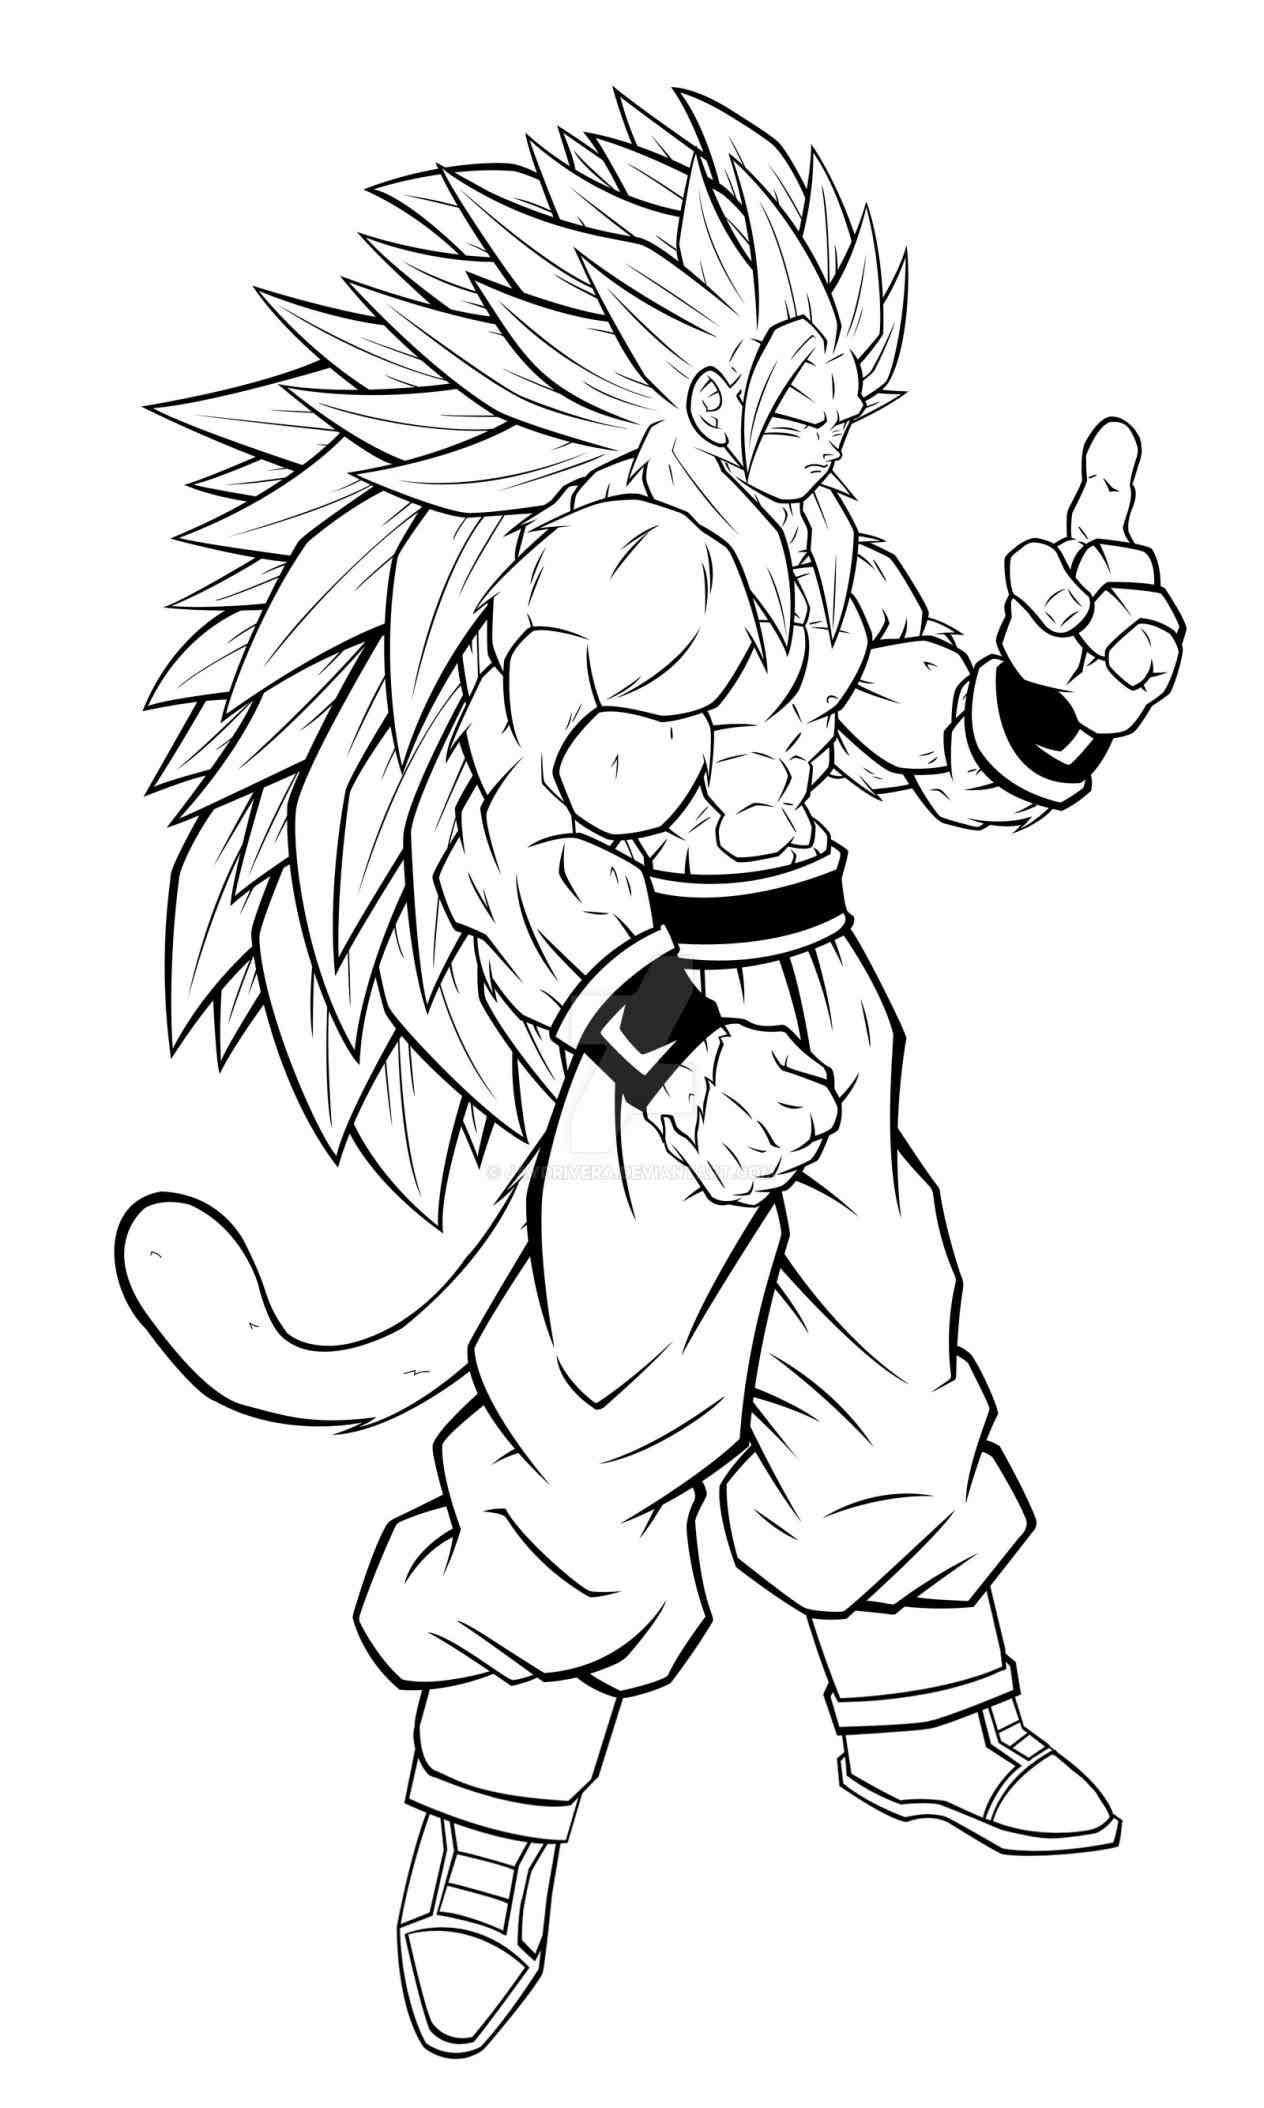 goku super saiyan coloring pages dragon ball z coloring pages goku super saiyan 5 coloring super goku saiyan pages